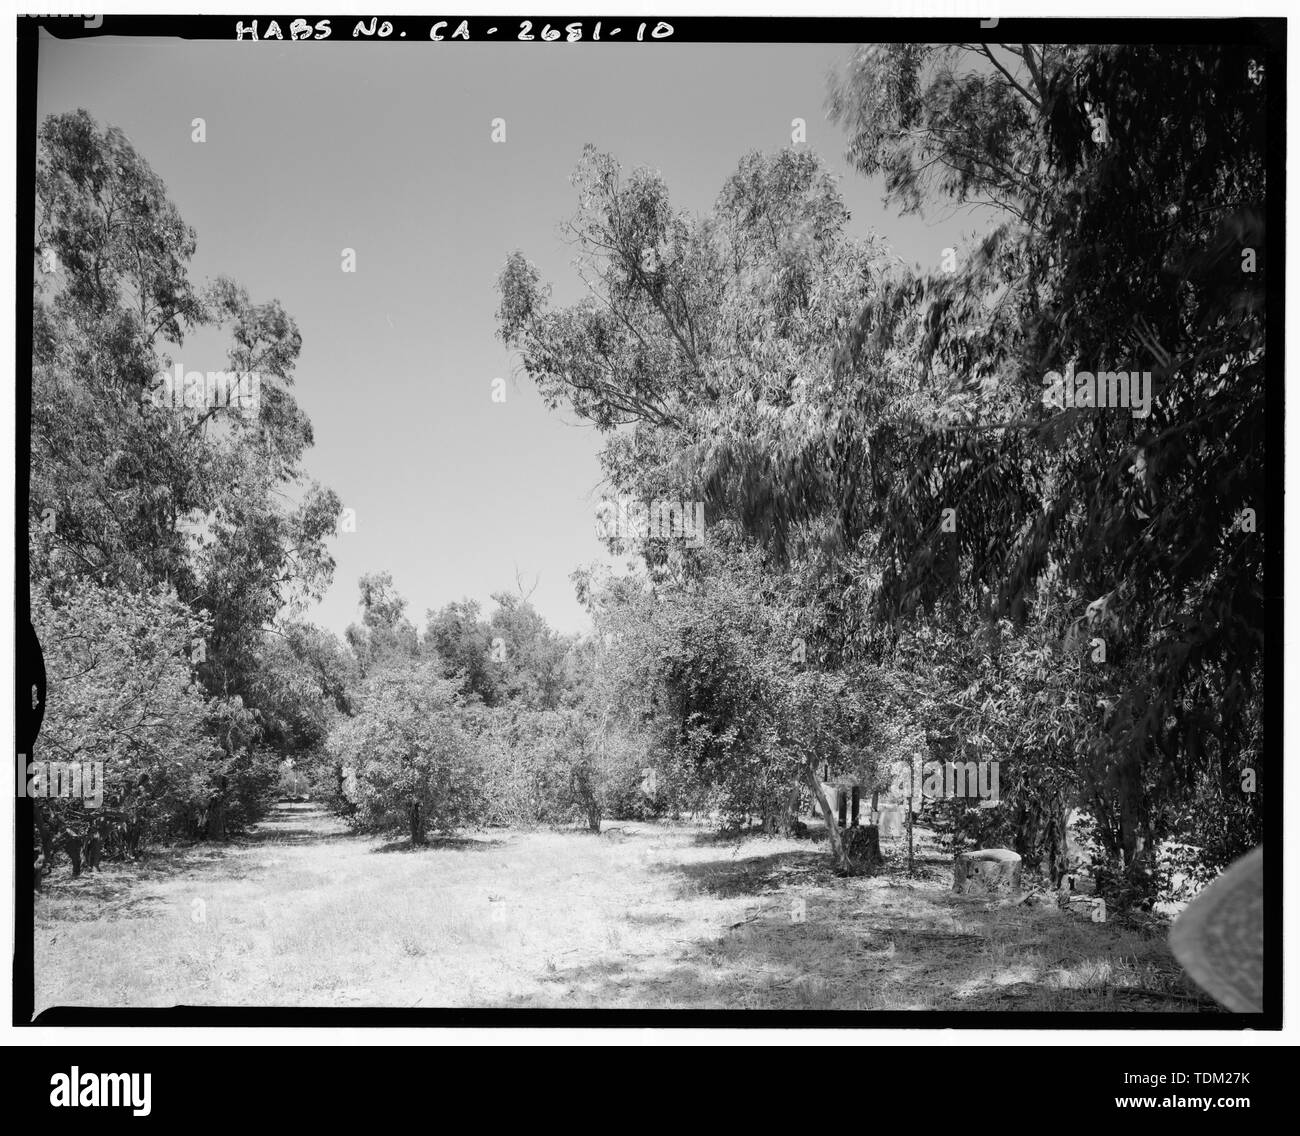 Overview in two parts- Right view showing orchard path on left eucalyptus windbreak bordering knoll on right. Camera facing 278 west. - Goerlitz House, 9893 Highland Avenue, Rancho Cucamonga, San Bernardino County, CA - Stock Image